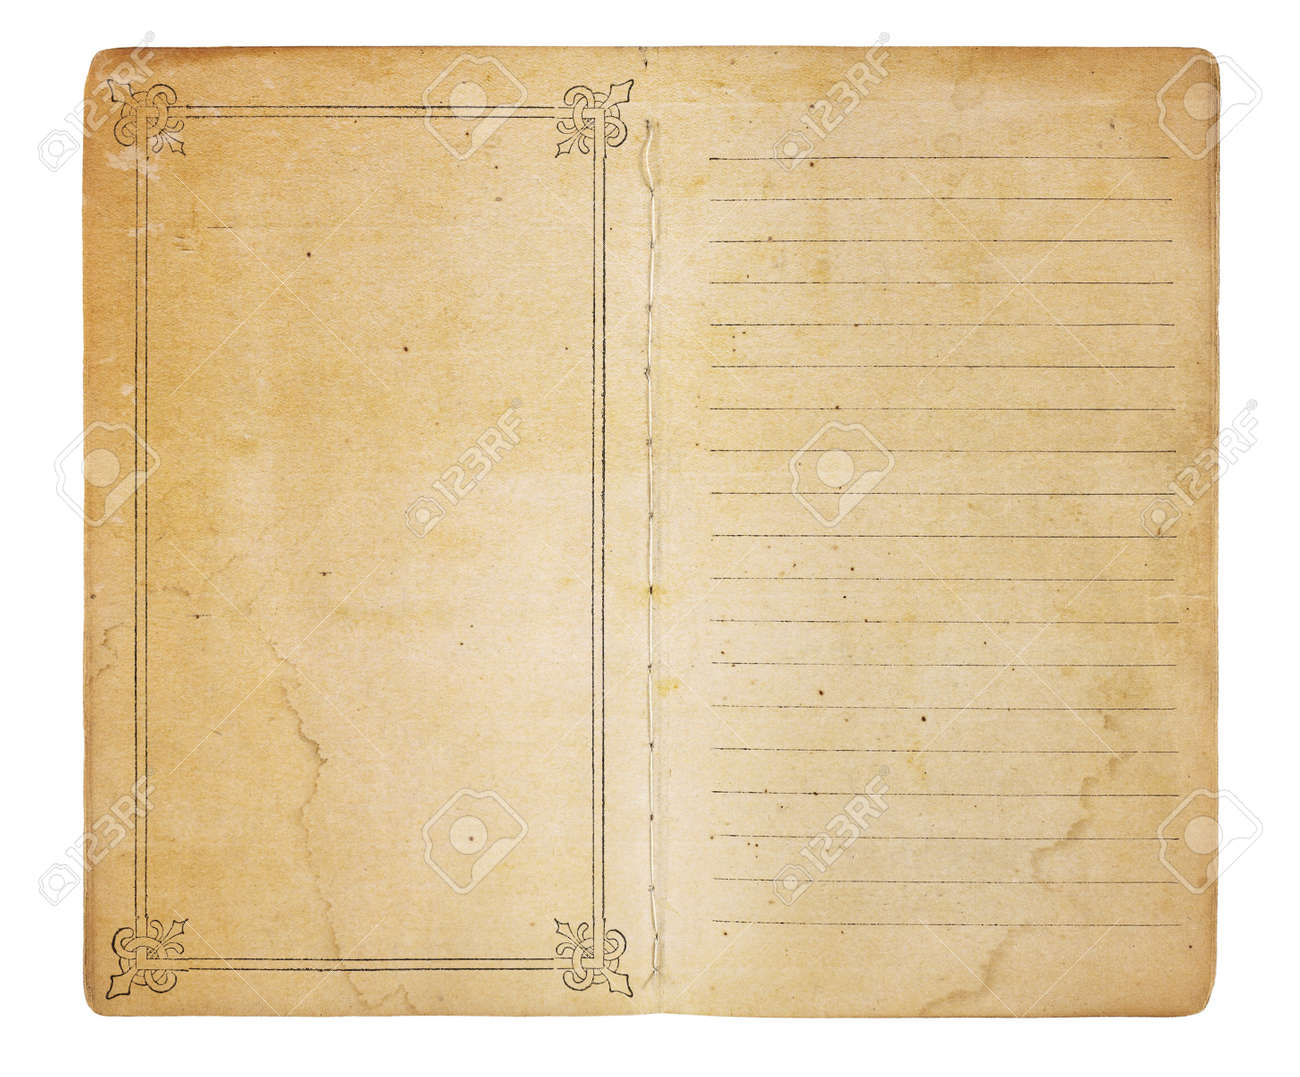 an old memo book opened to reveal yellowing stained pages one an old memo book opened to reveal yellowing stained pages one page is empty